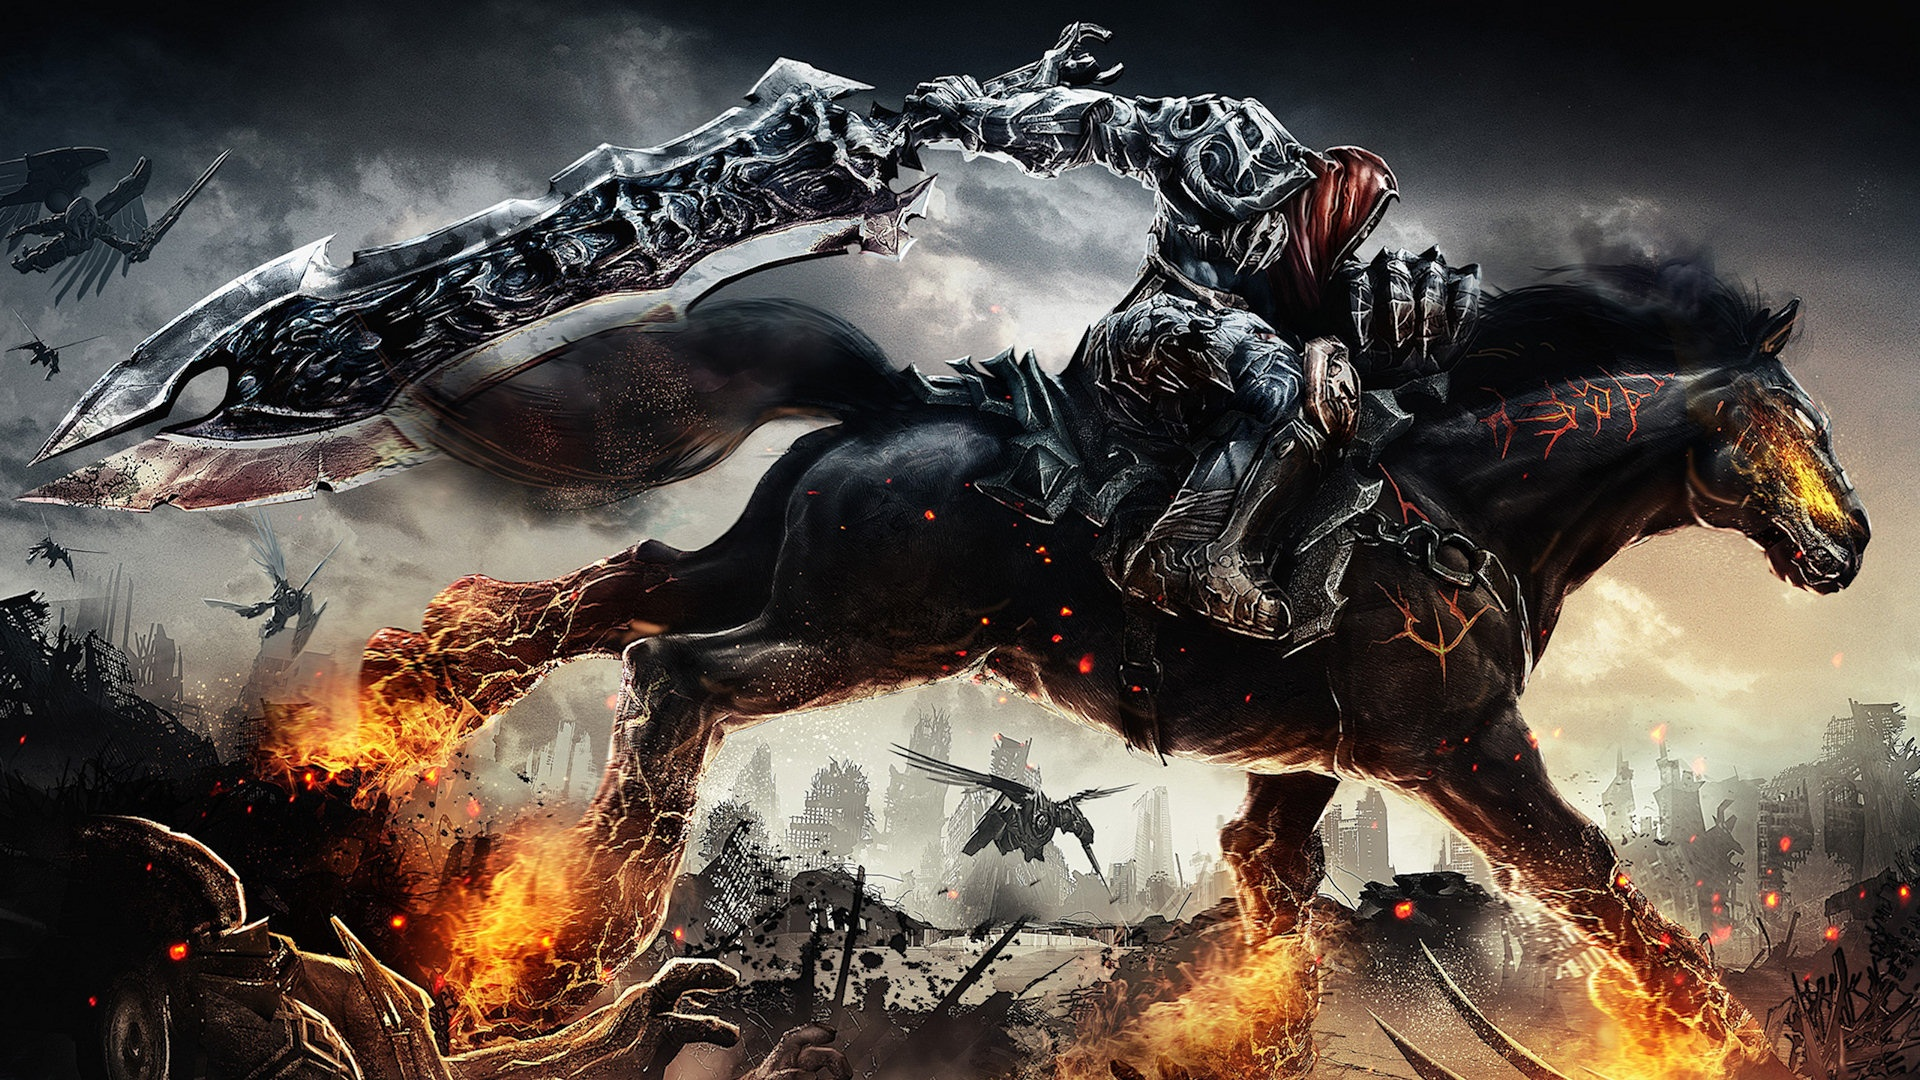 Horsemen Background Apocalypse Desktop wallpapers HD   179295 1920x1080